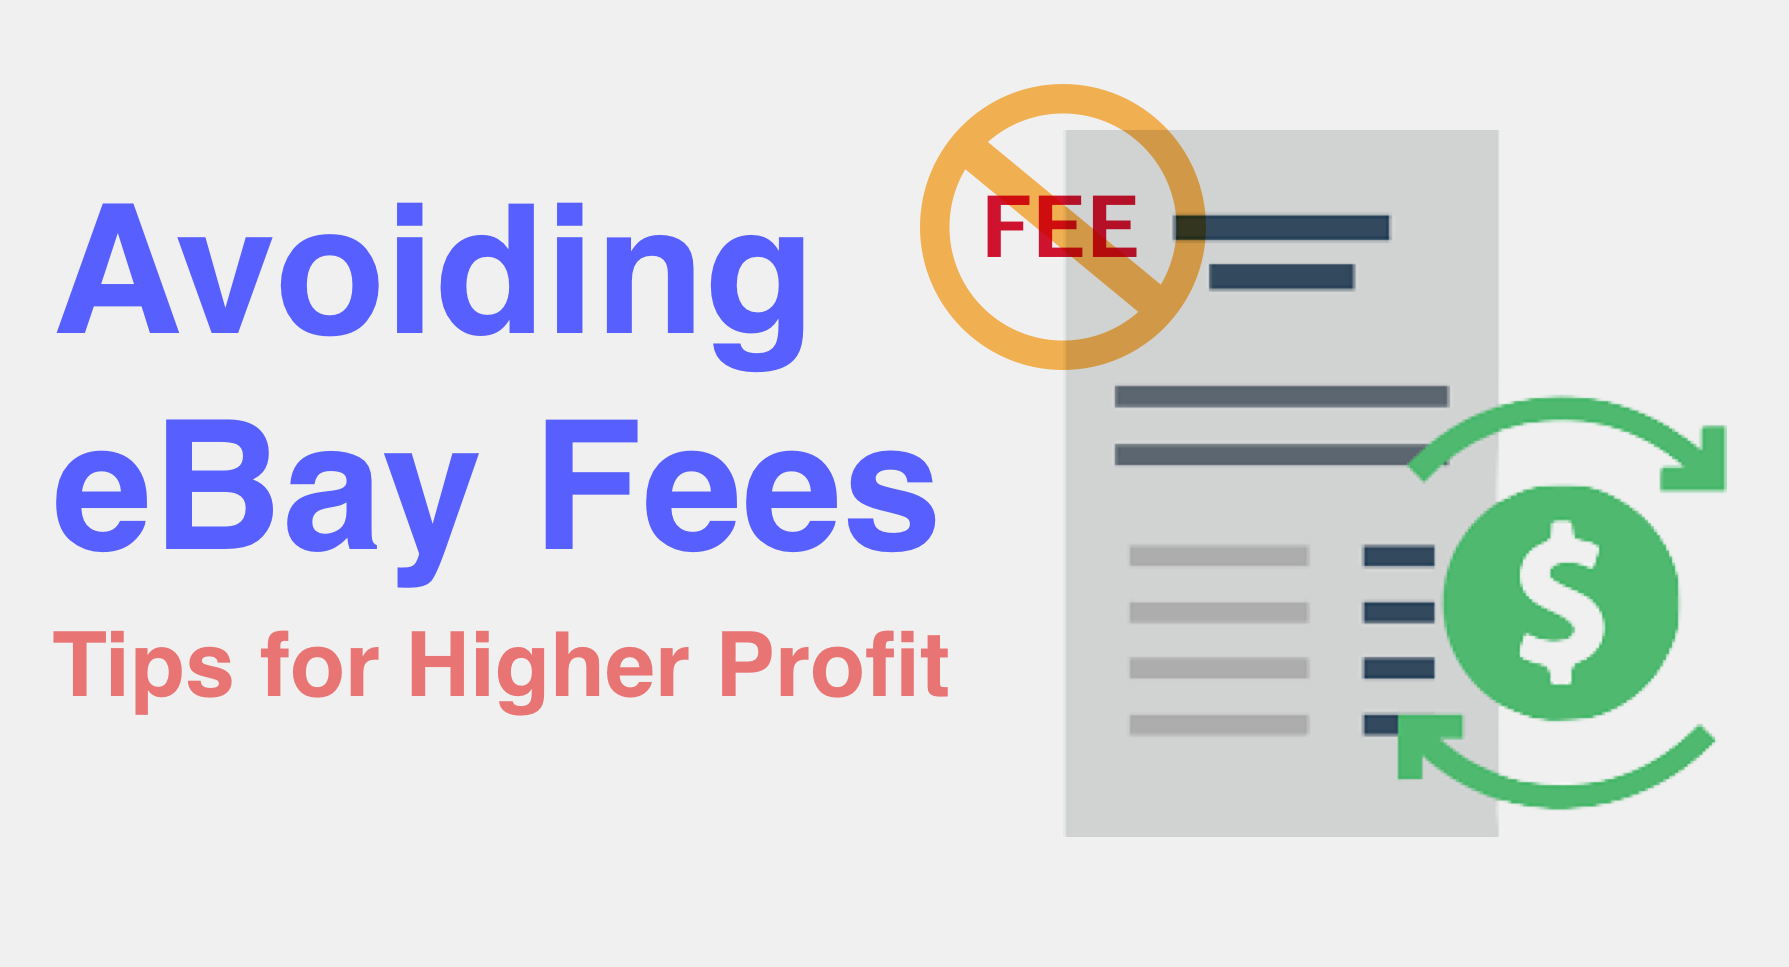 How Much Are Ebay Fees >> Avoiding Ebay Fees Tips For Higher Profit Sizely Medium